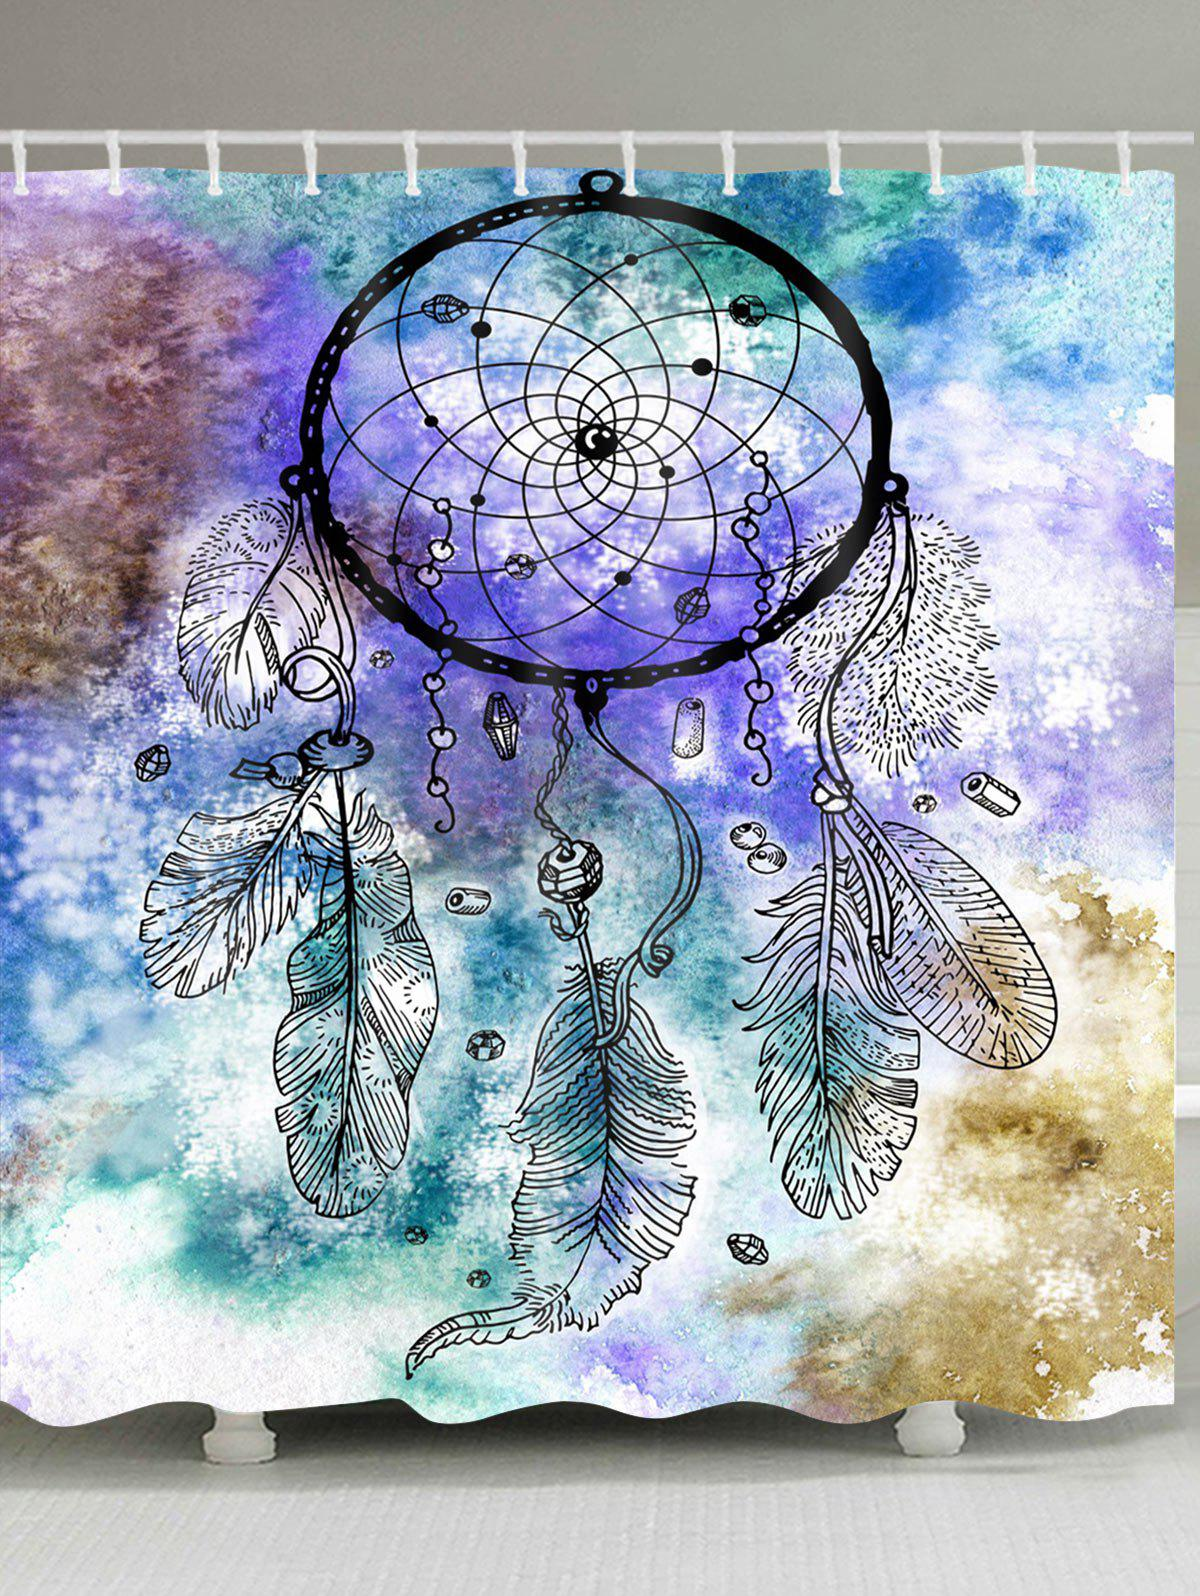 2018 dreamcatcher watercolor painting print waterproof for Dream catcher spray painting